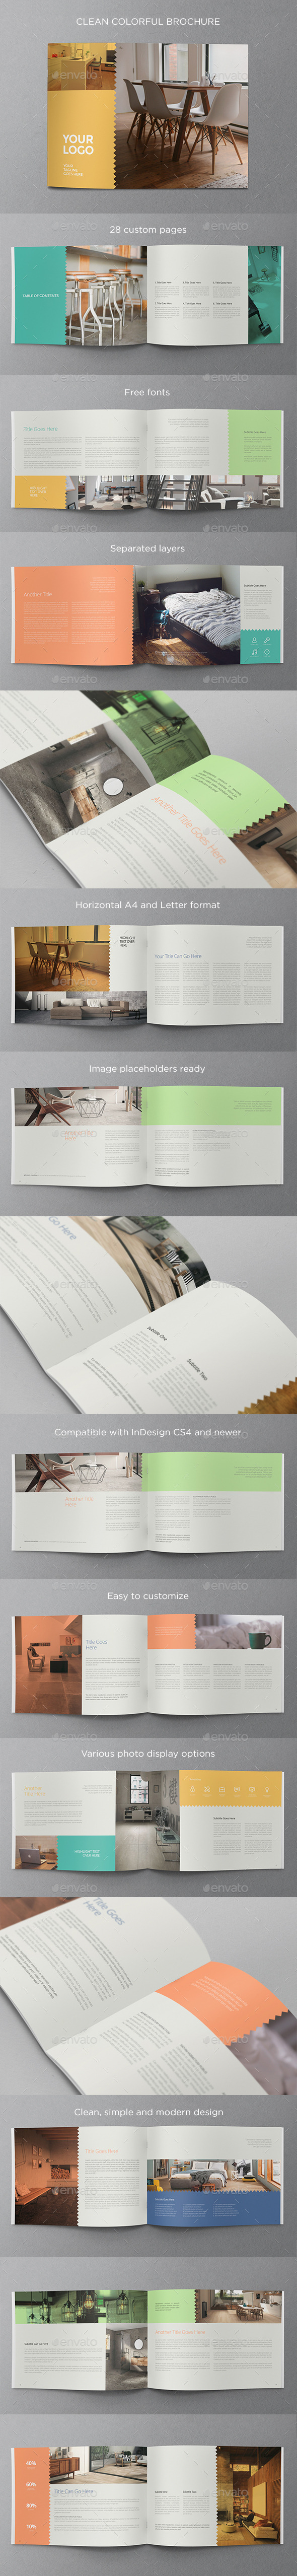 Clean Colorful Brochure - Brochures Print Templates